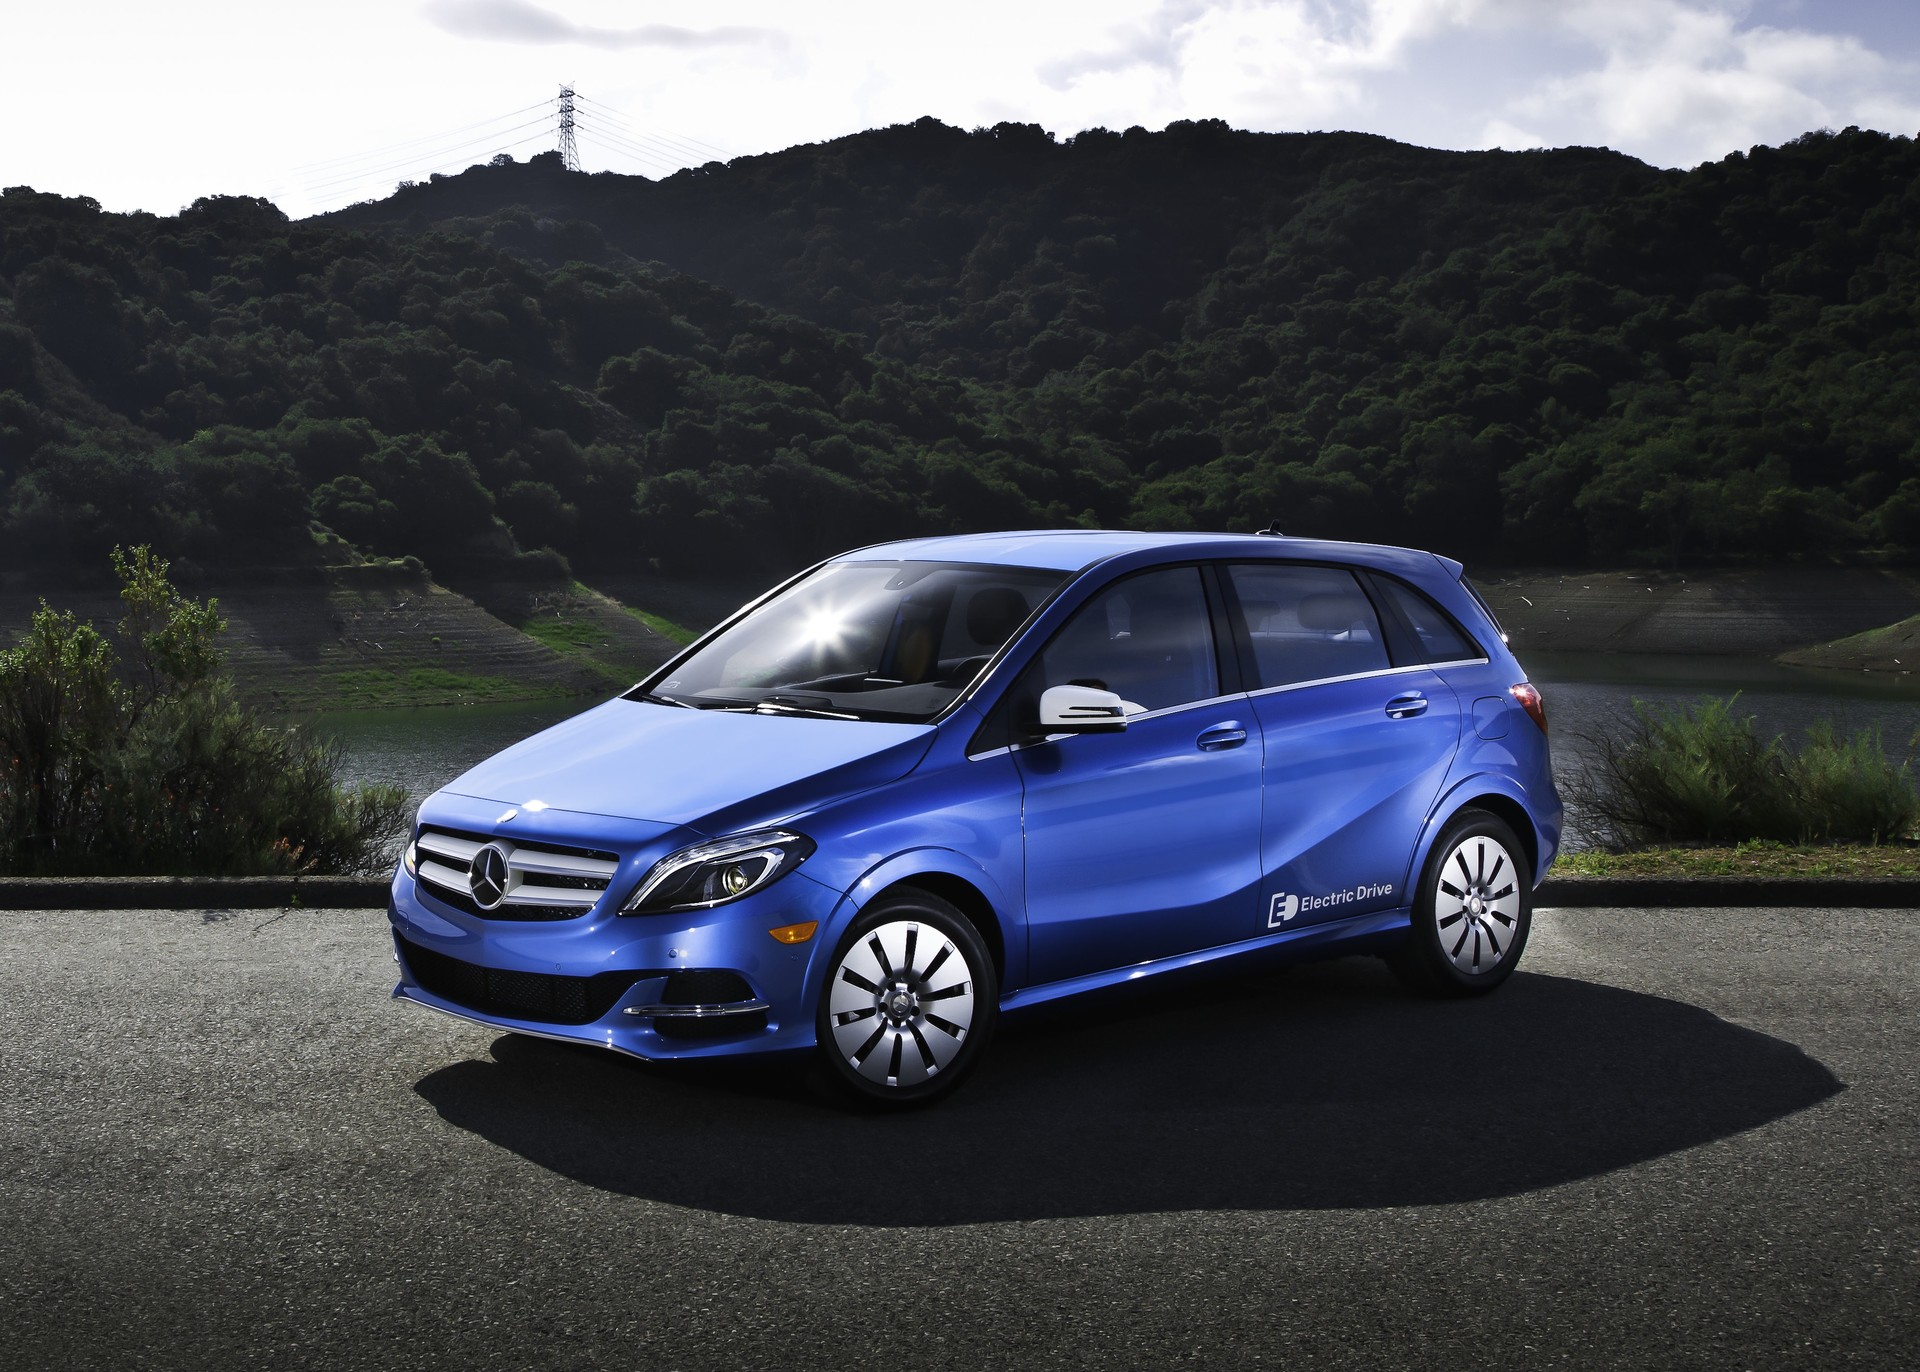 Nissan Leaf Lease >> 2014 Mercedes B-Class: Best Electric-Car Lease Deal Available?